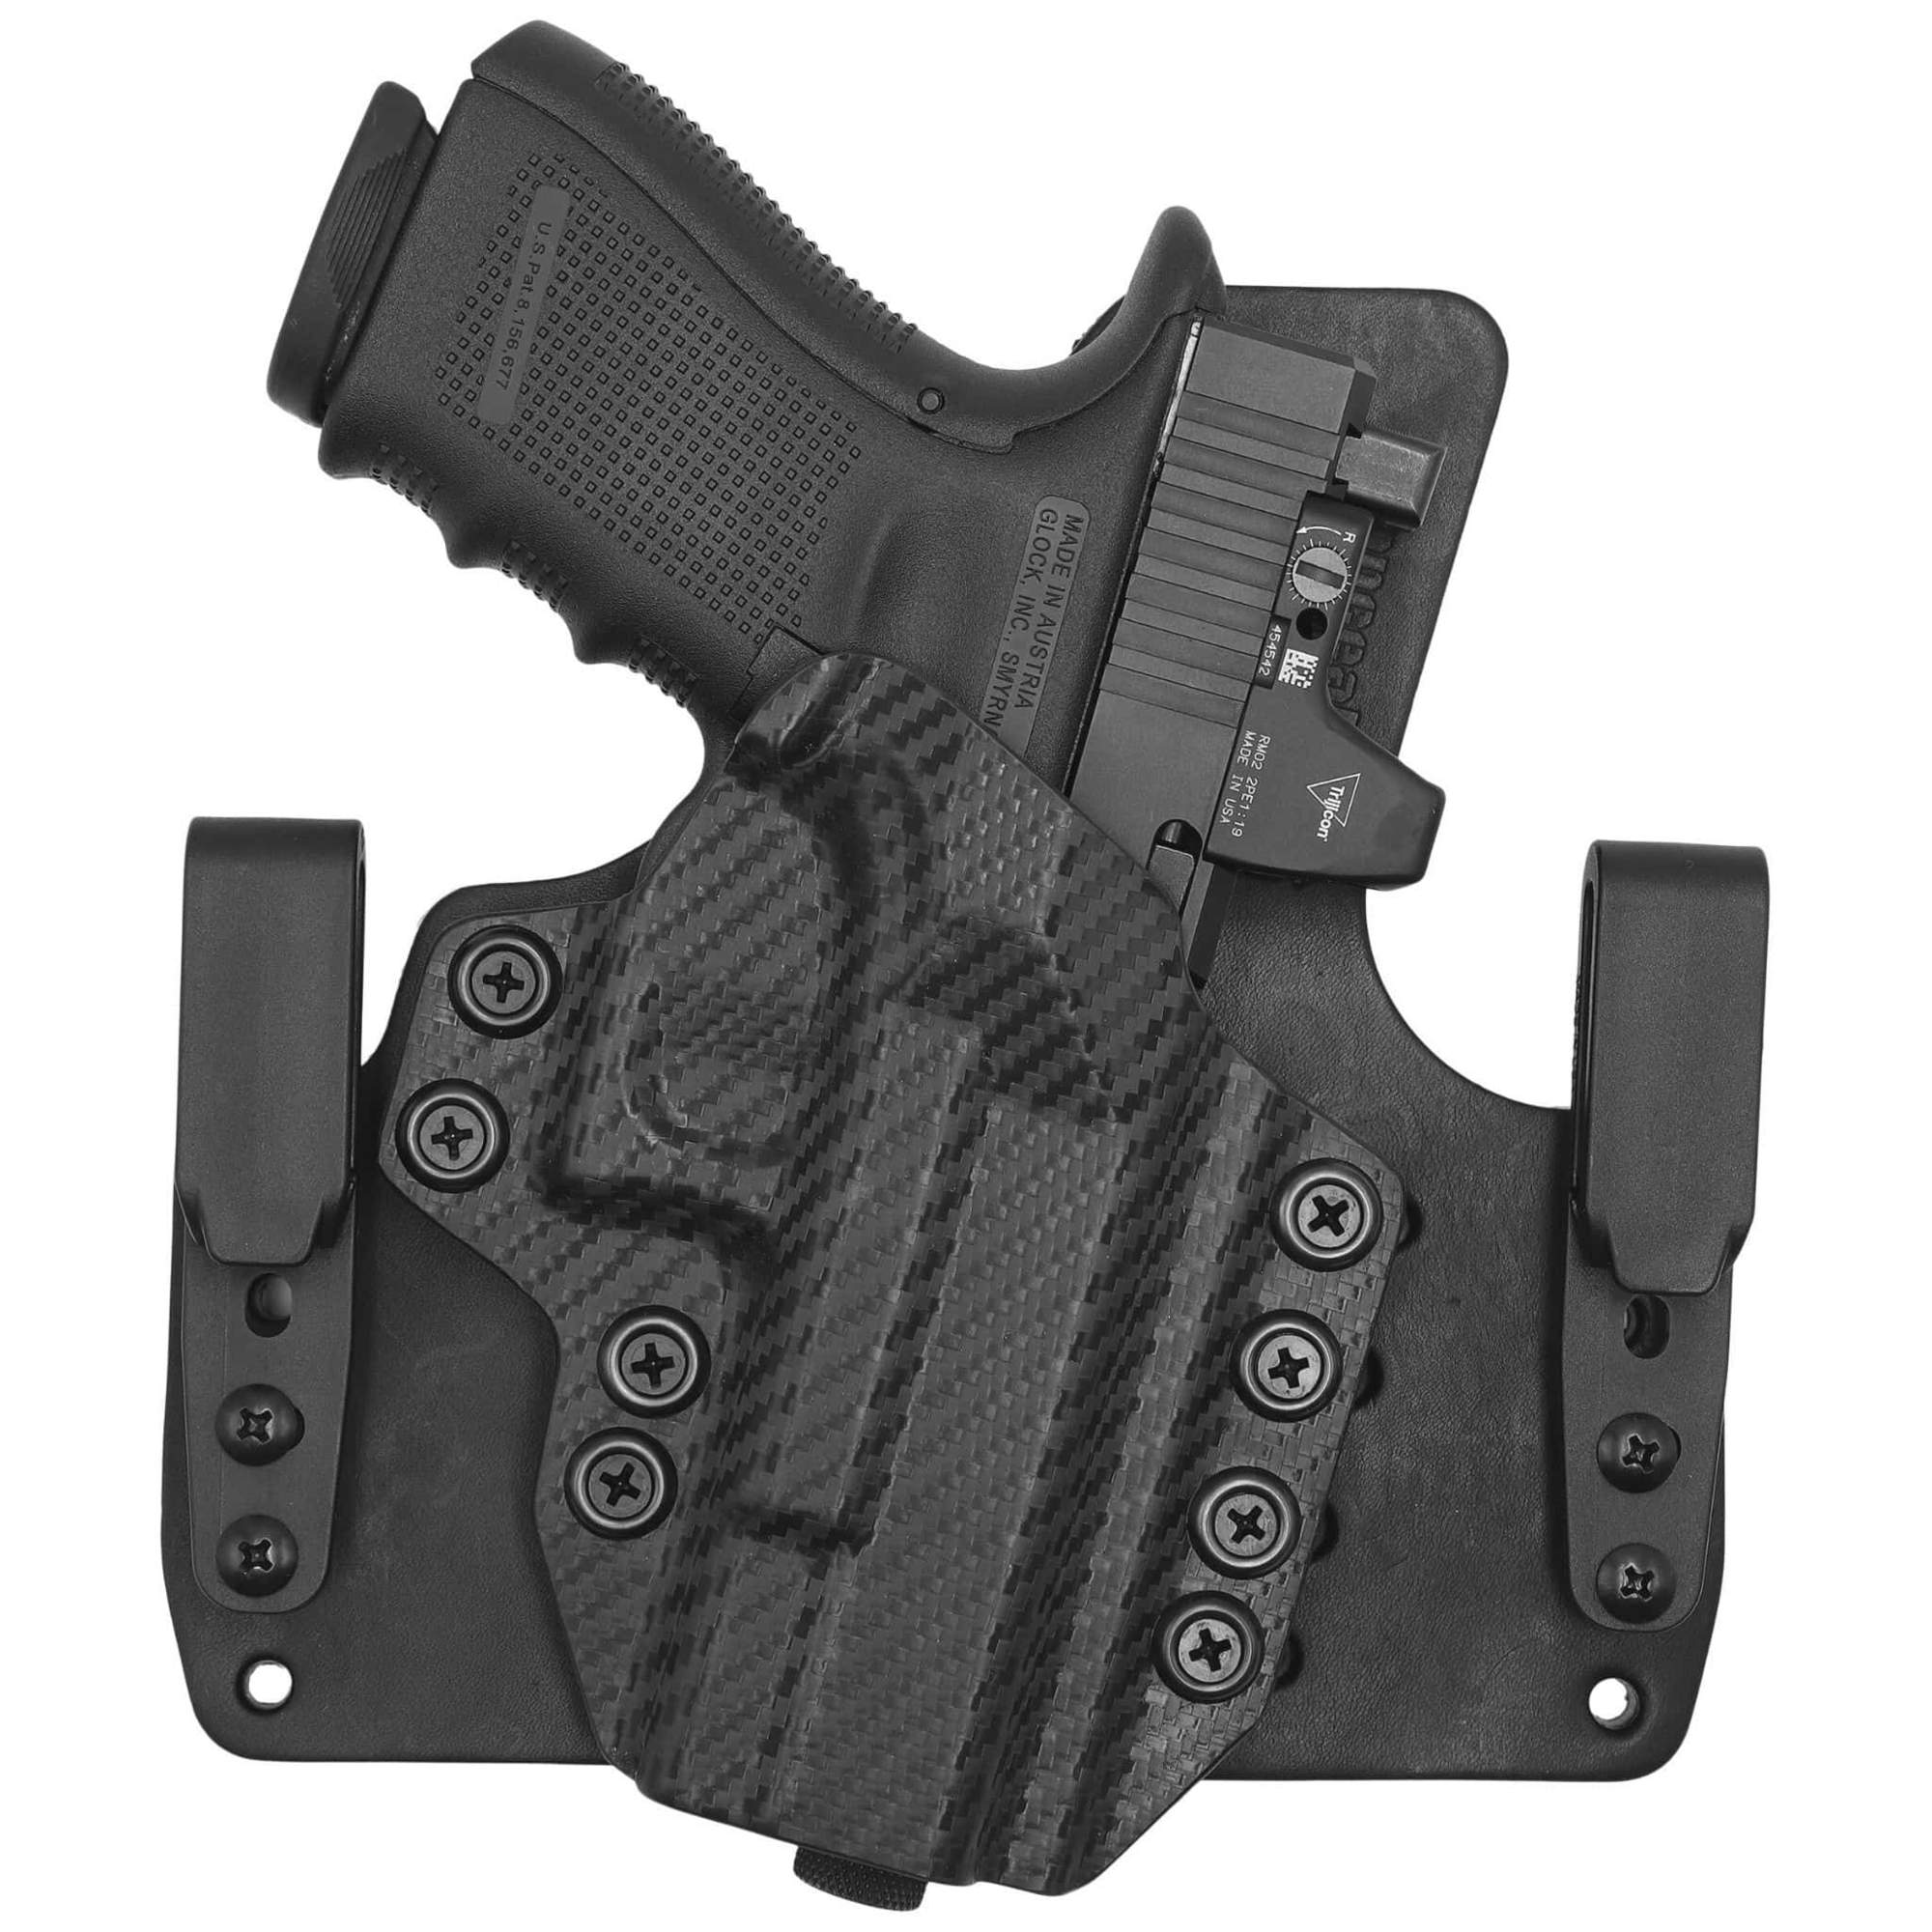 Leather KYDEX Hybrid Holsters